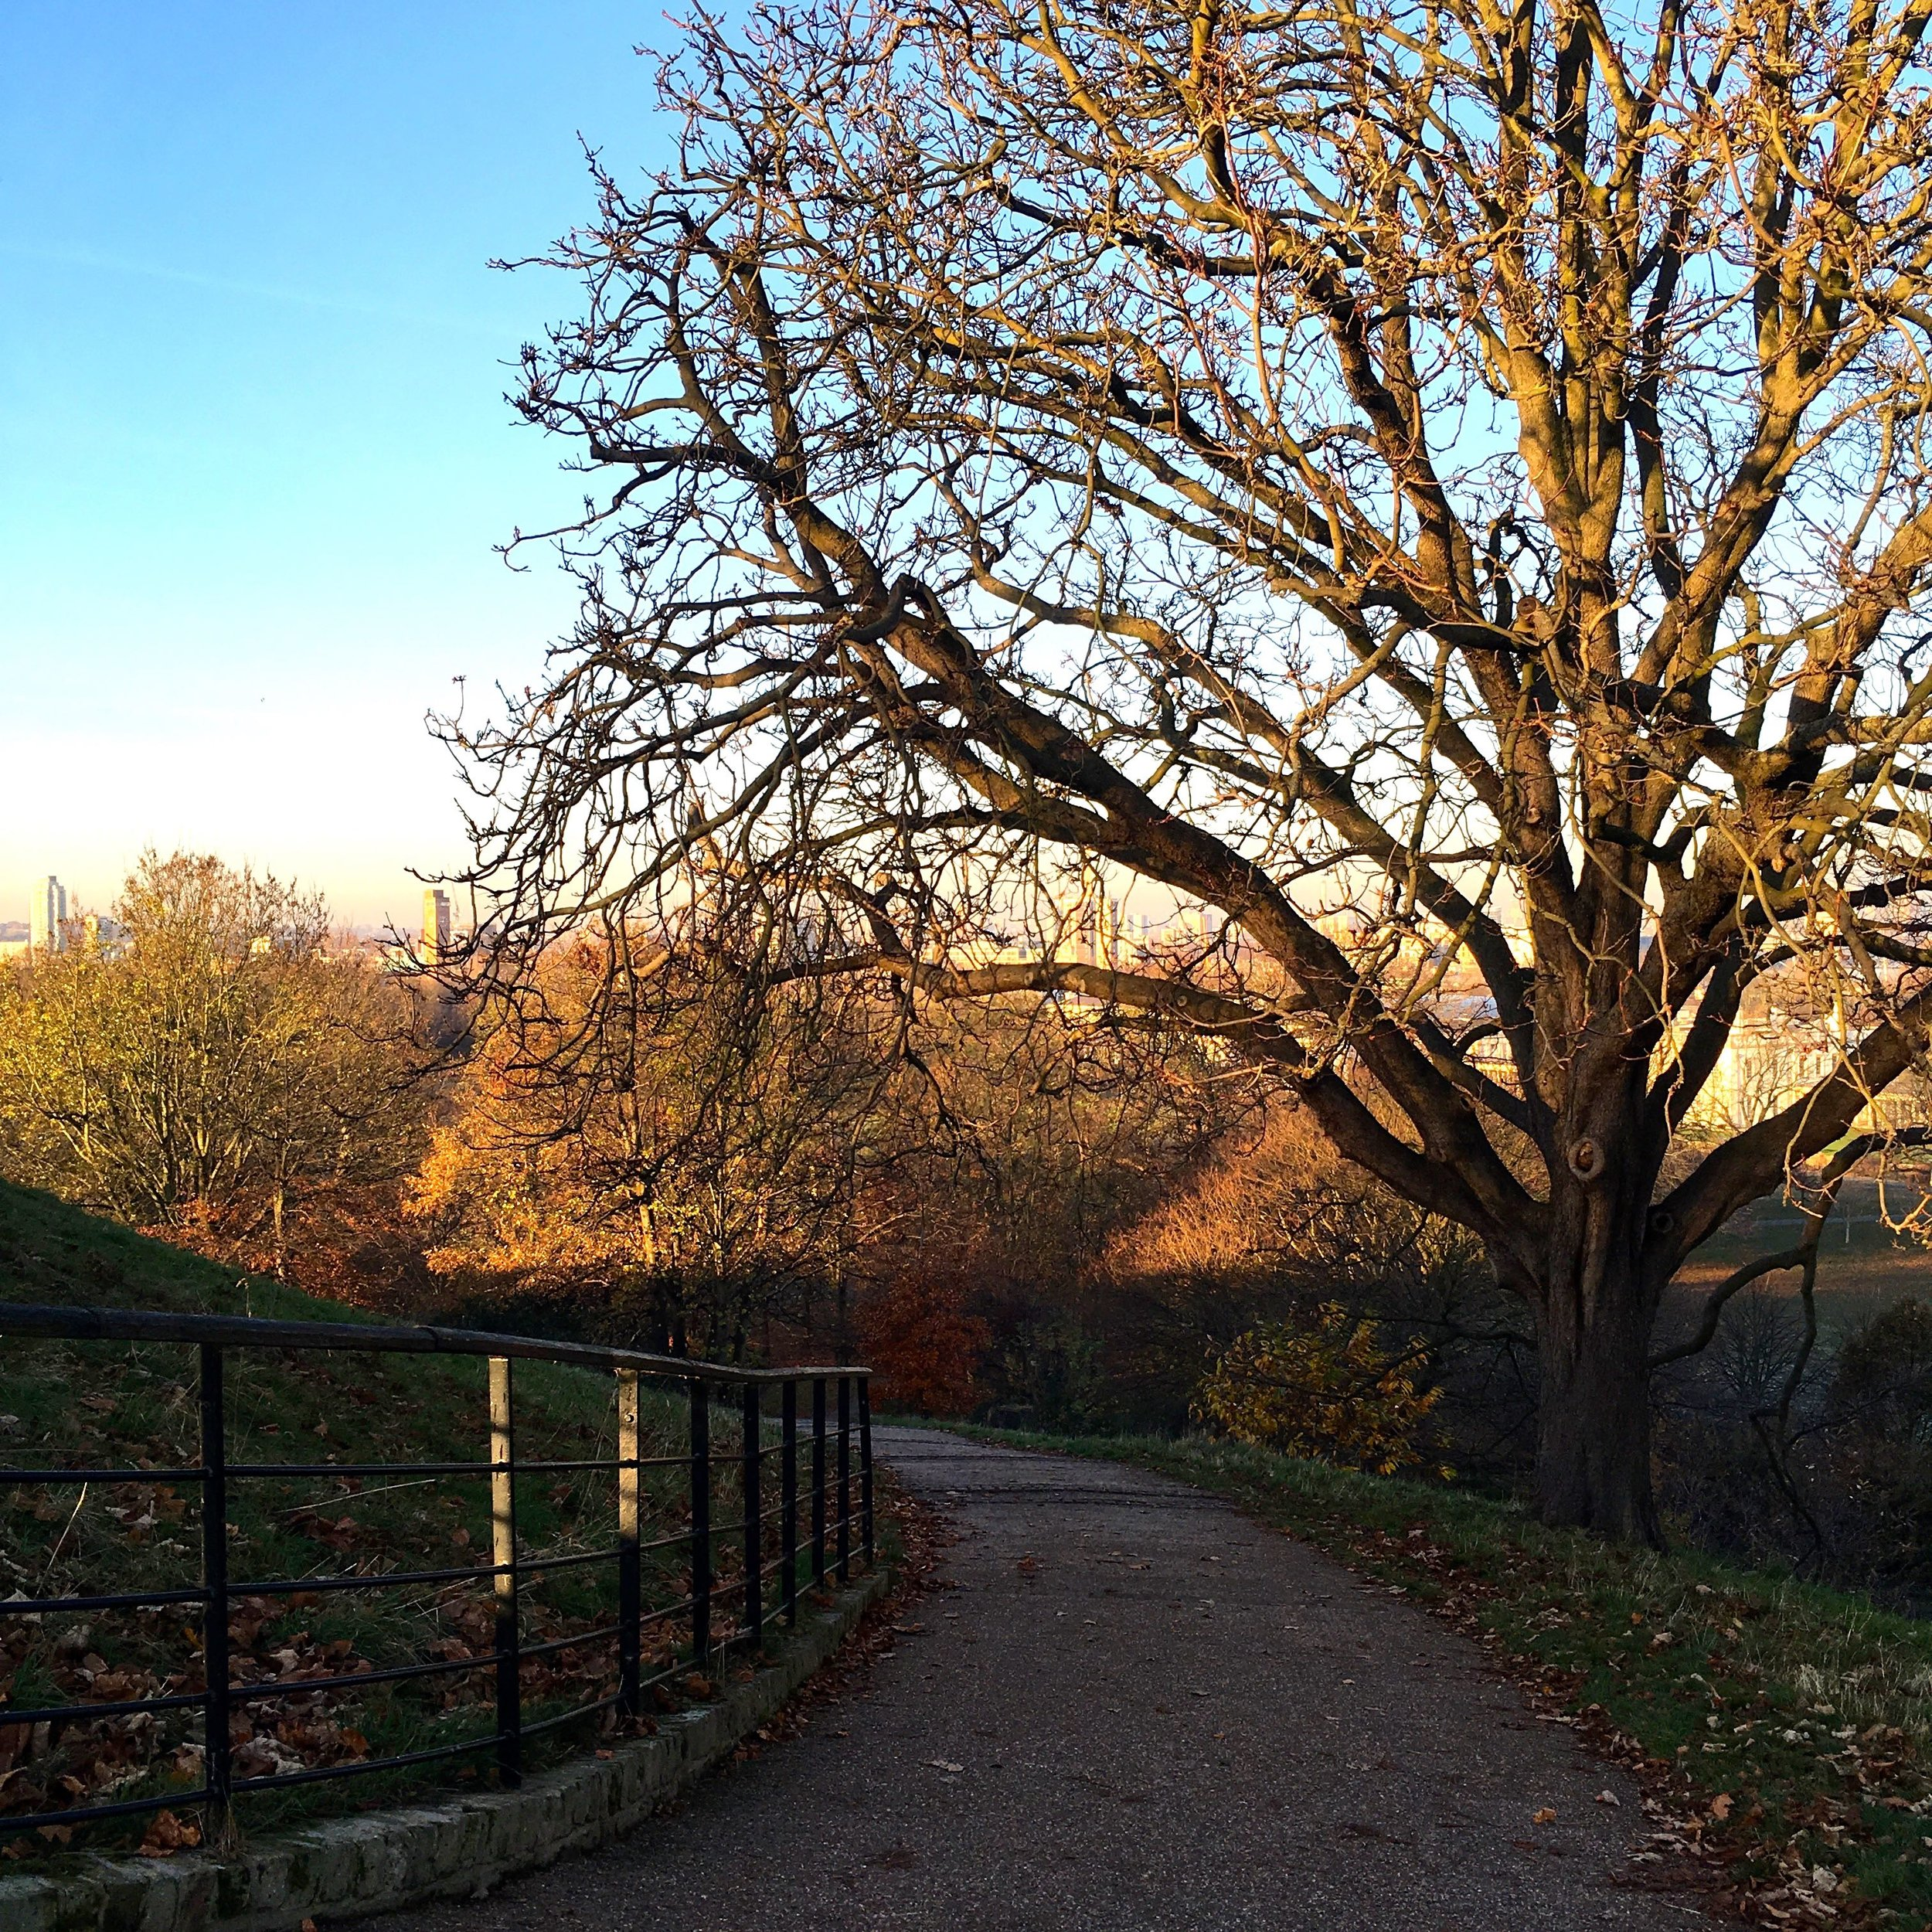 Great light and frosty mornings, and heels, possibly not the day to try a new downhill path